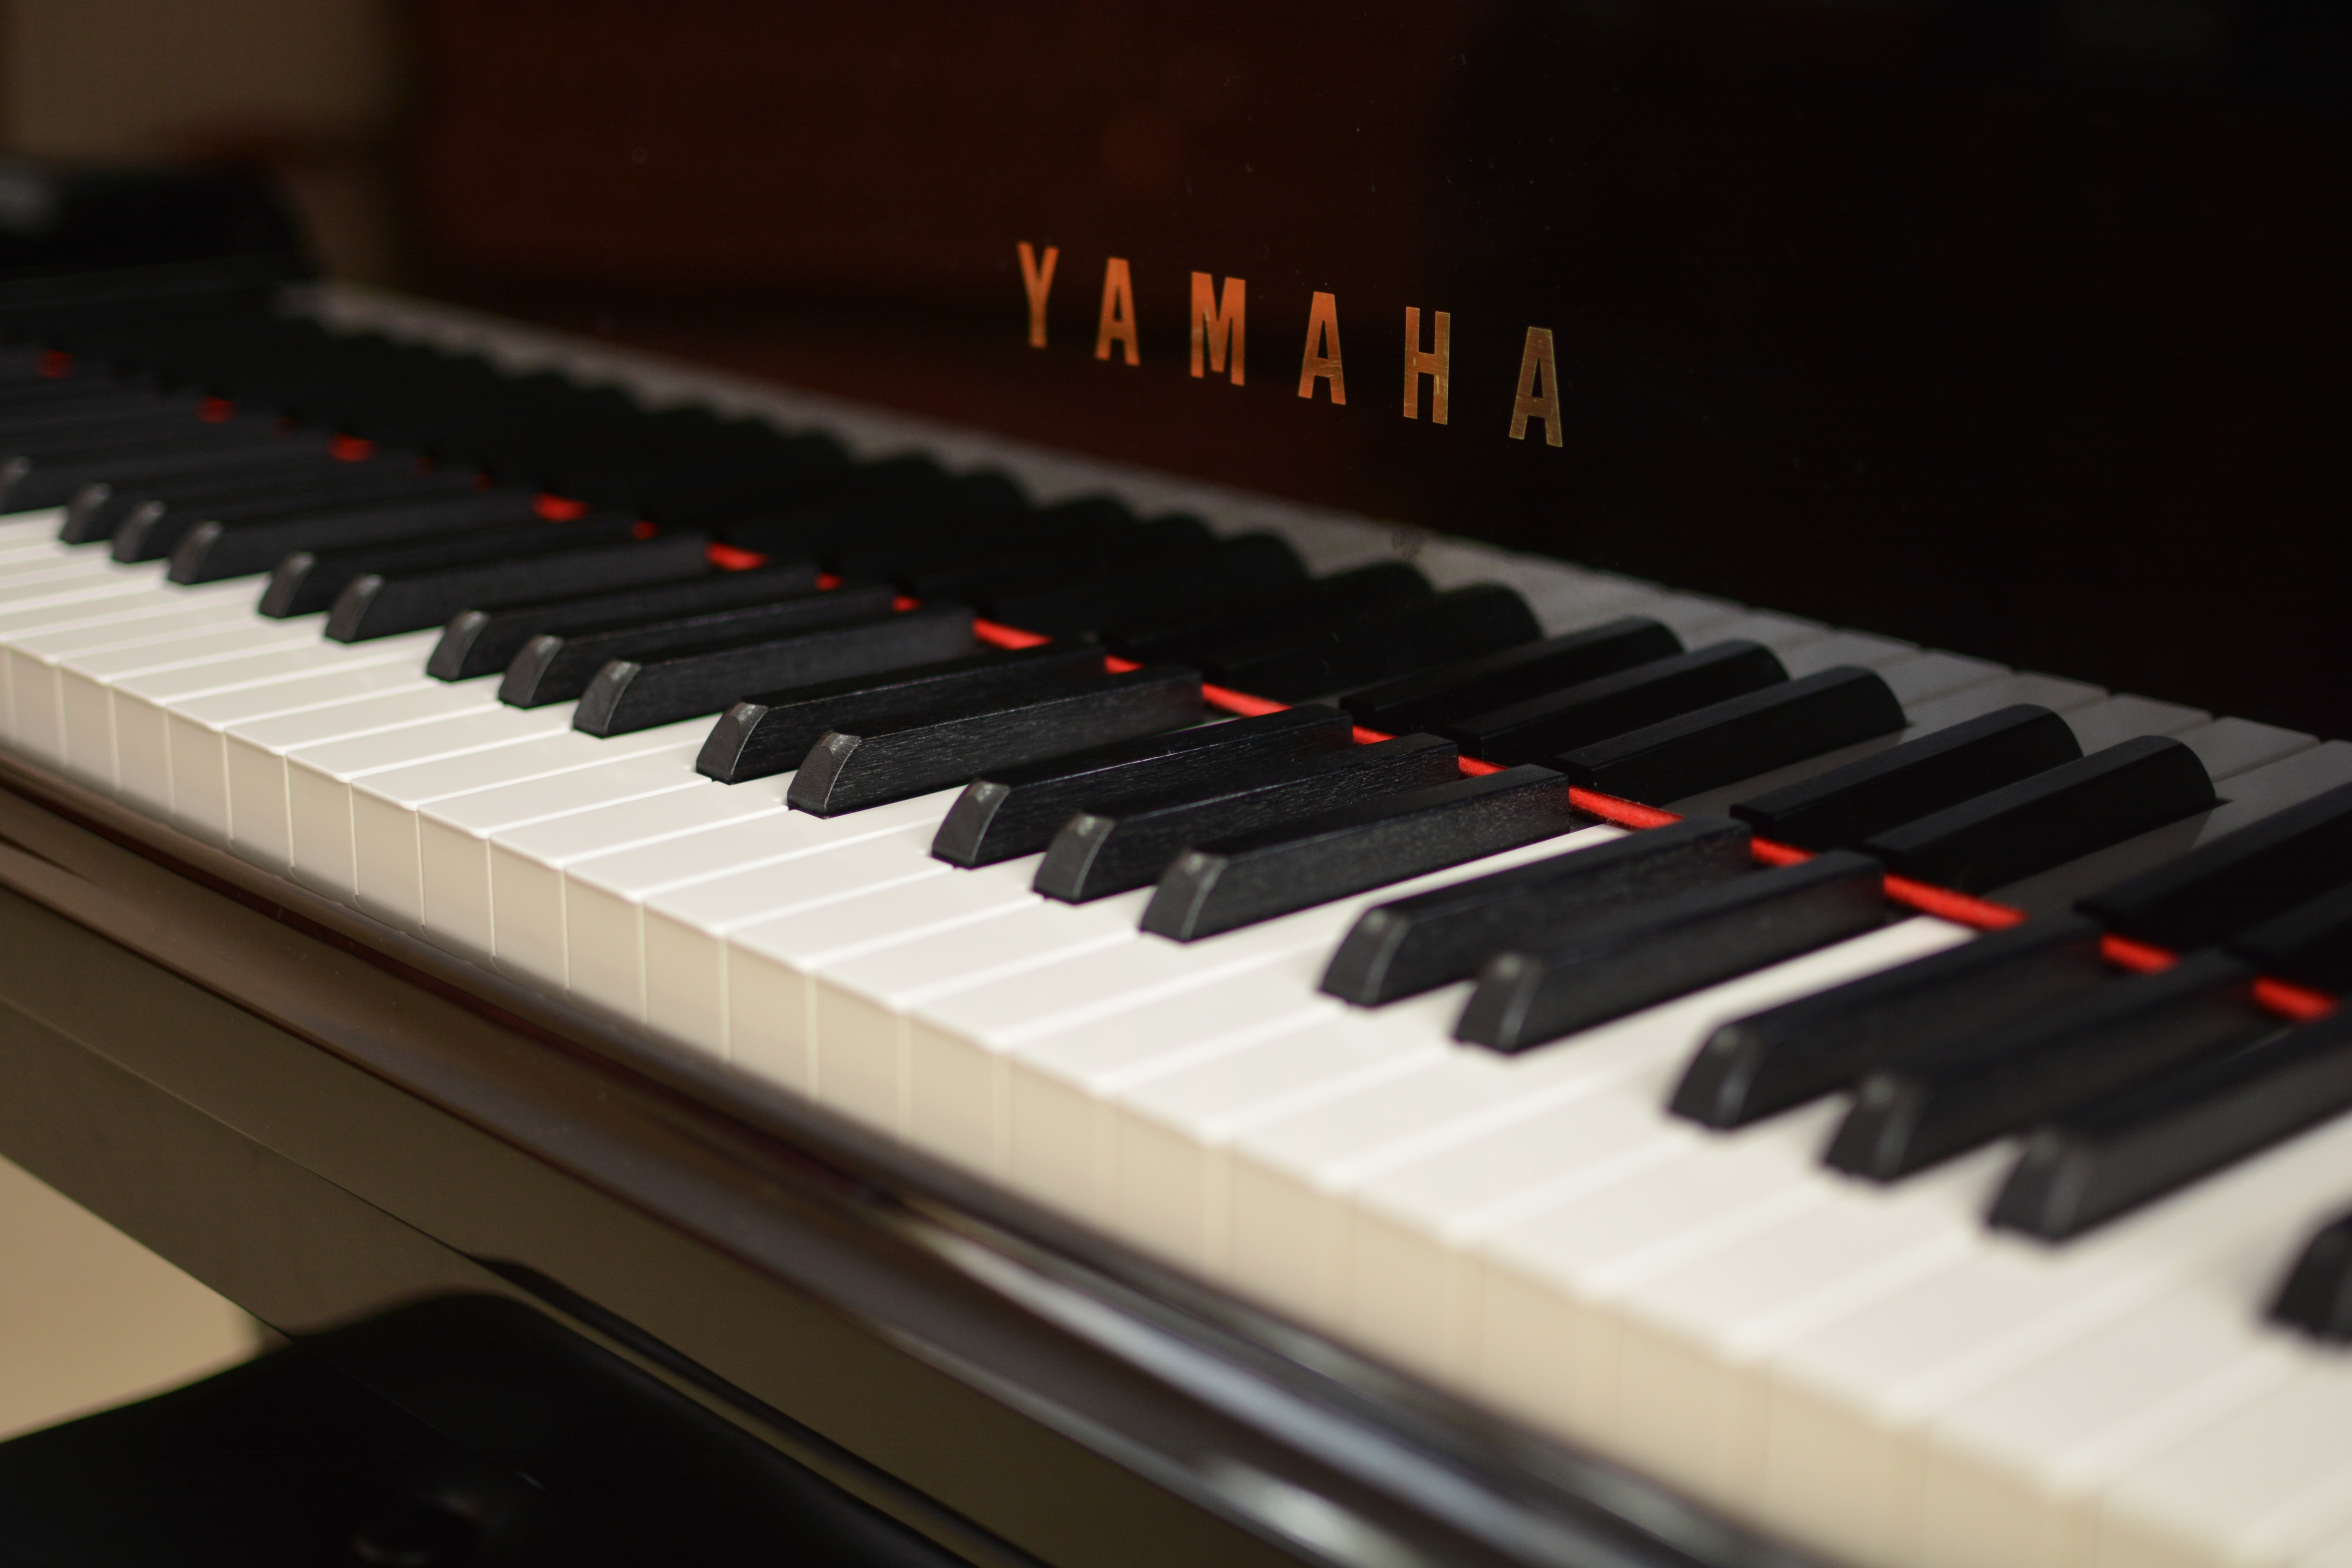 The Yamaha Range